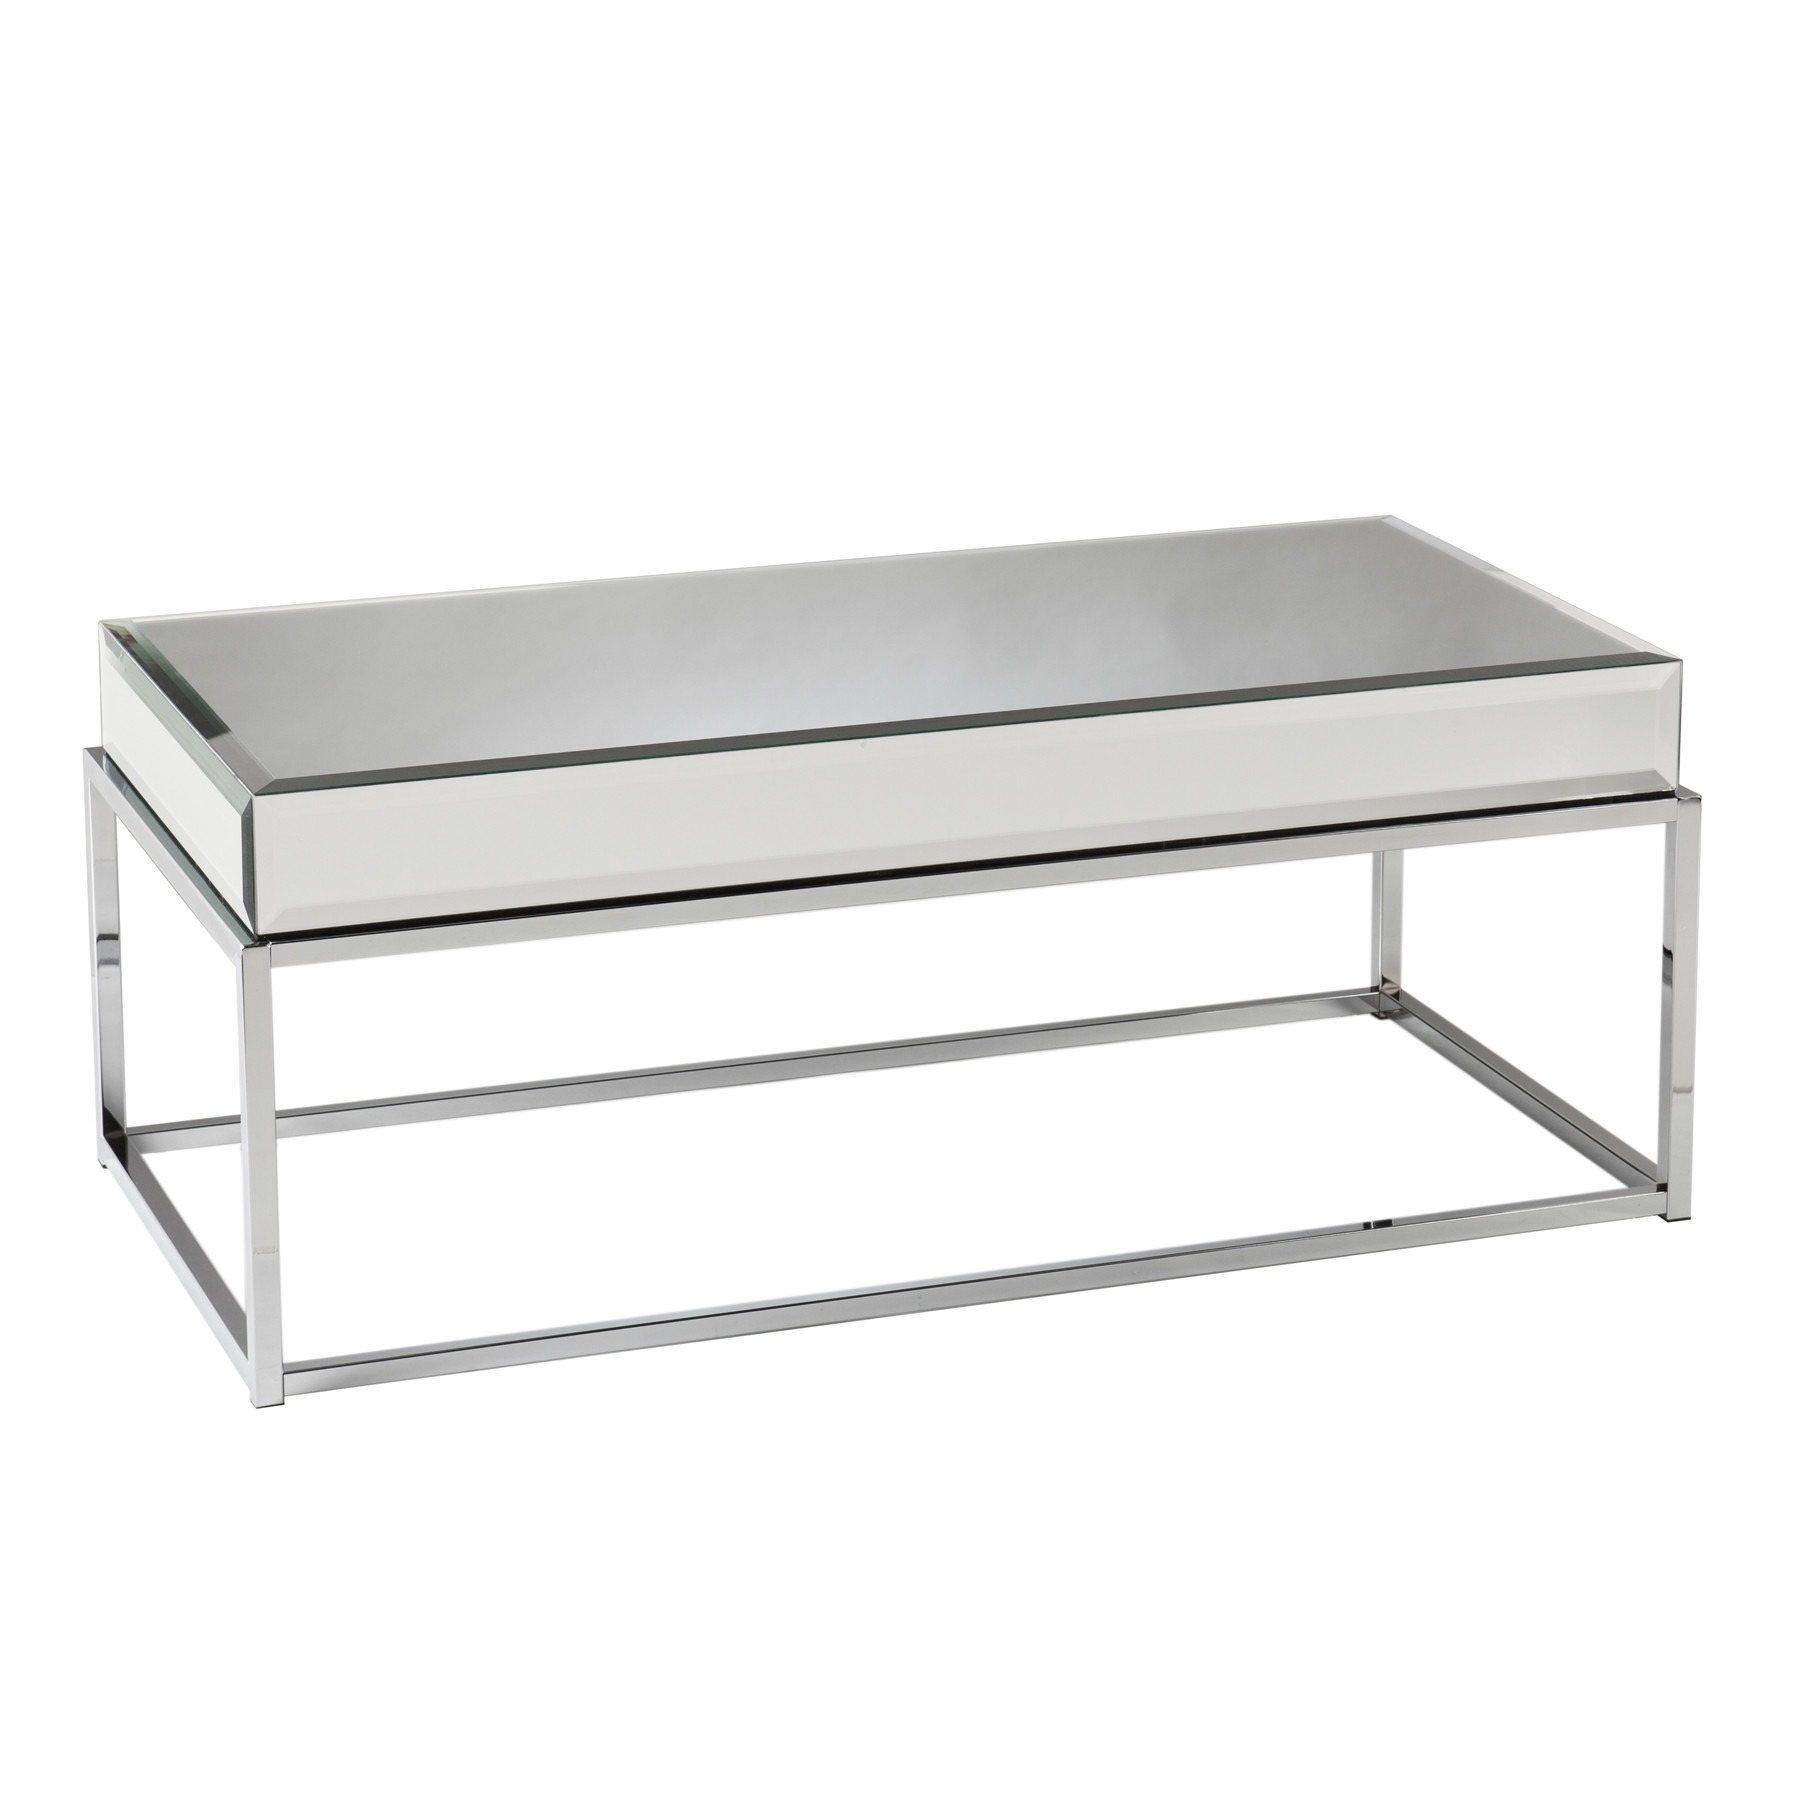 Z Gallerie Mirrored Coffee Table | Mirrored Coffee Table | Glass Nesting Coffee Tables